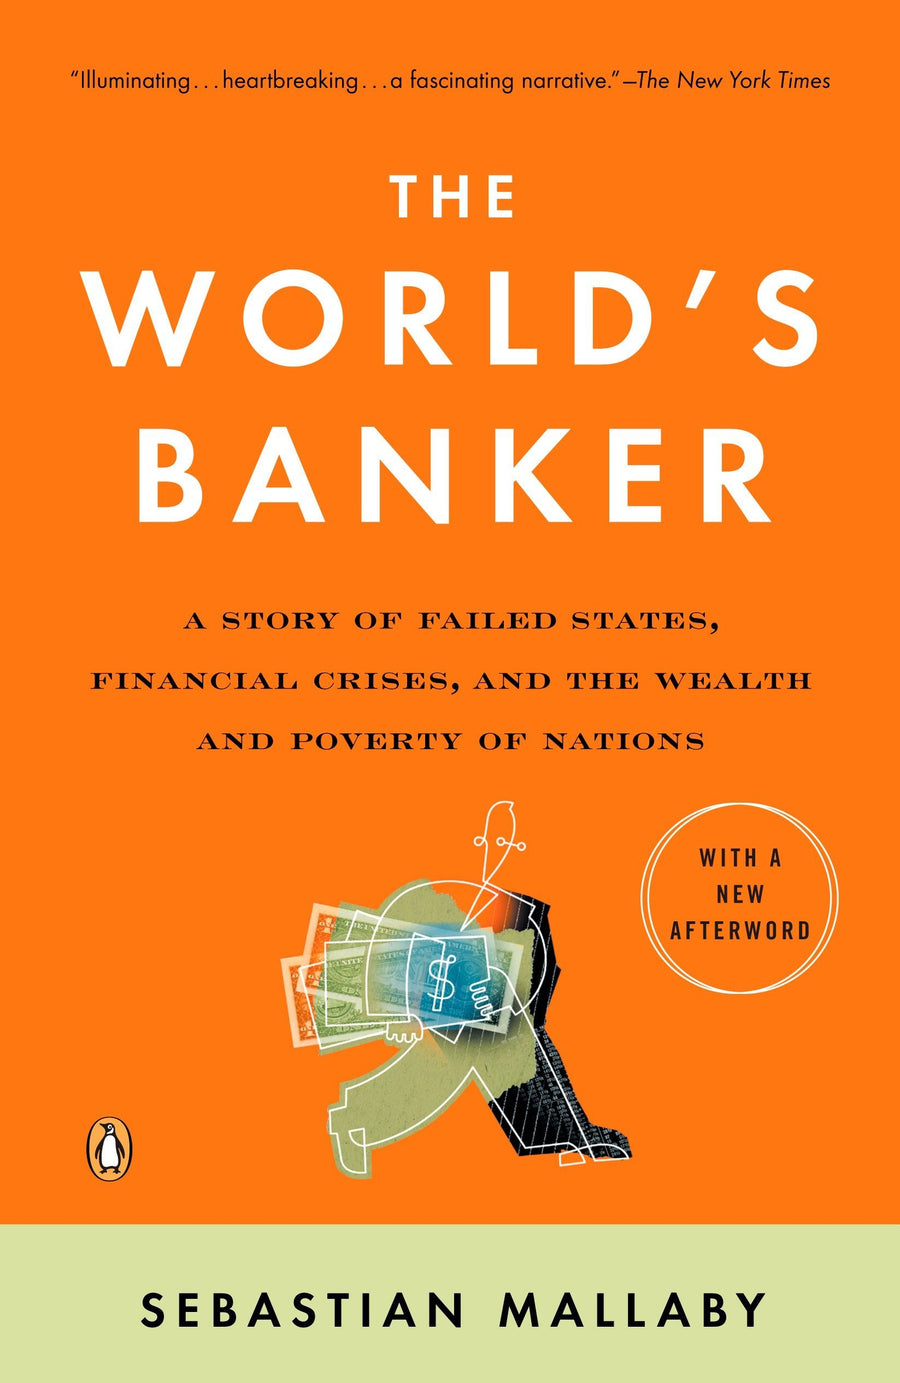 The World's Banker: A Story of Failed States, Financial Crises, and the Wealth and Poverty of Nations by Sebastian Mallaby